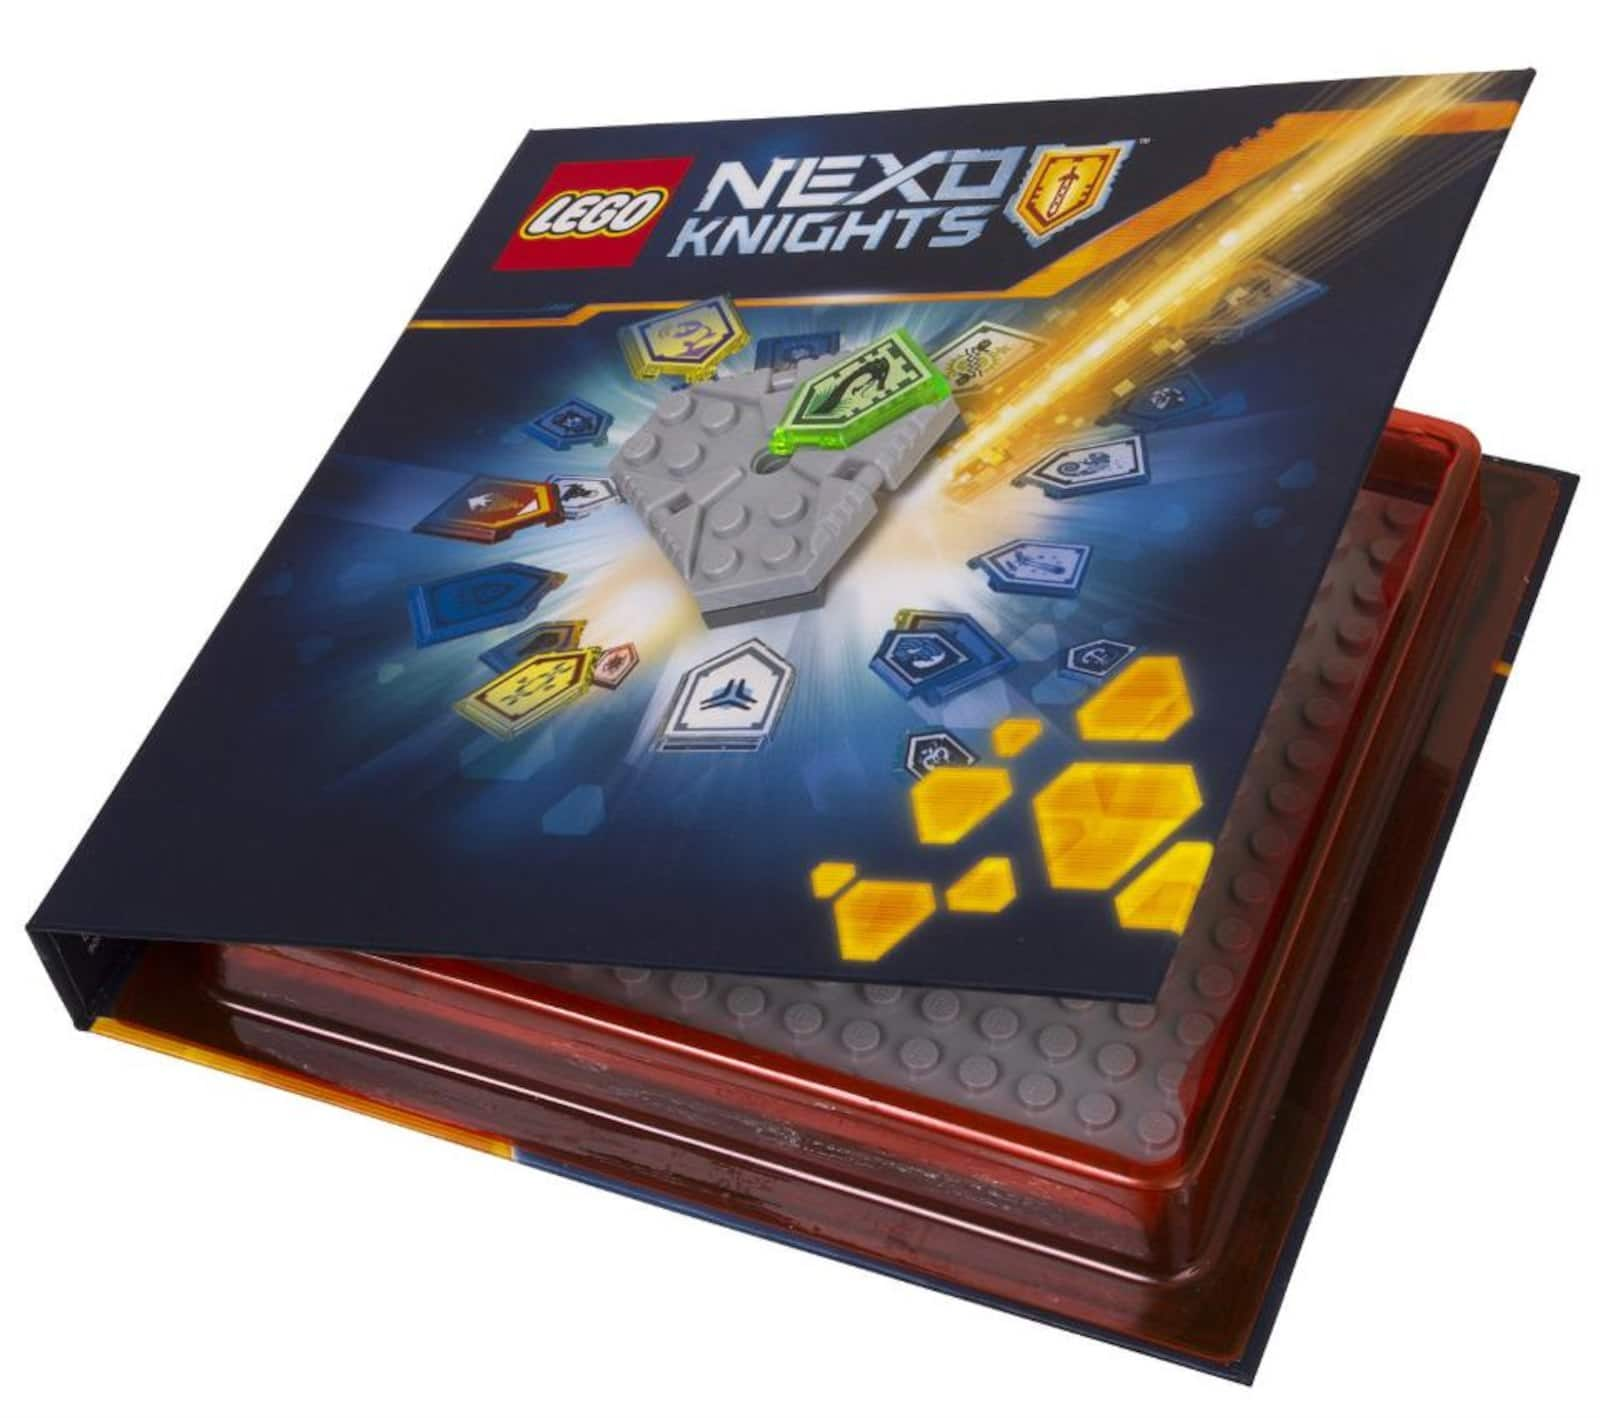 LEGO Nexo Knights Collector Case (5004913) for $1.98 @ Toys R Us